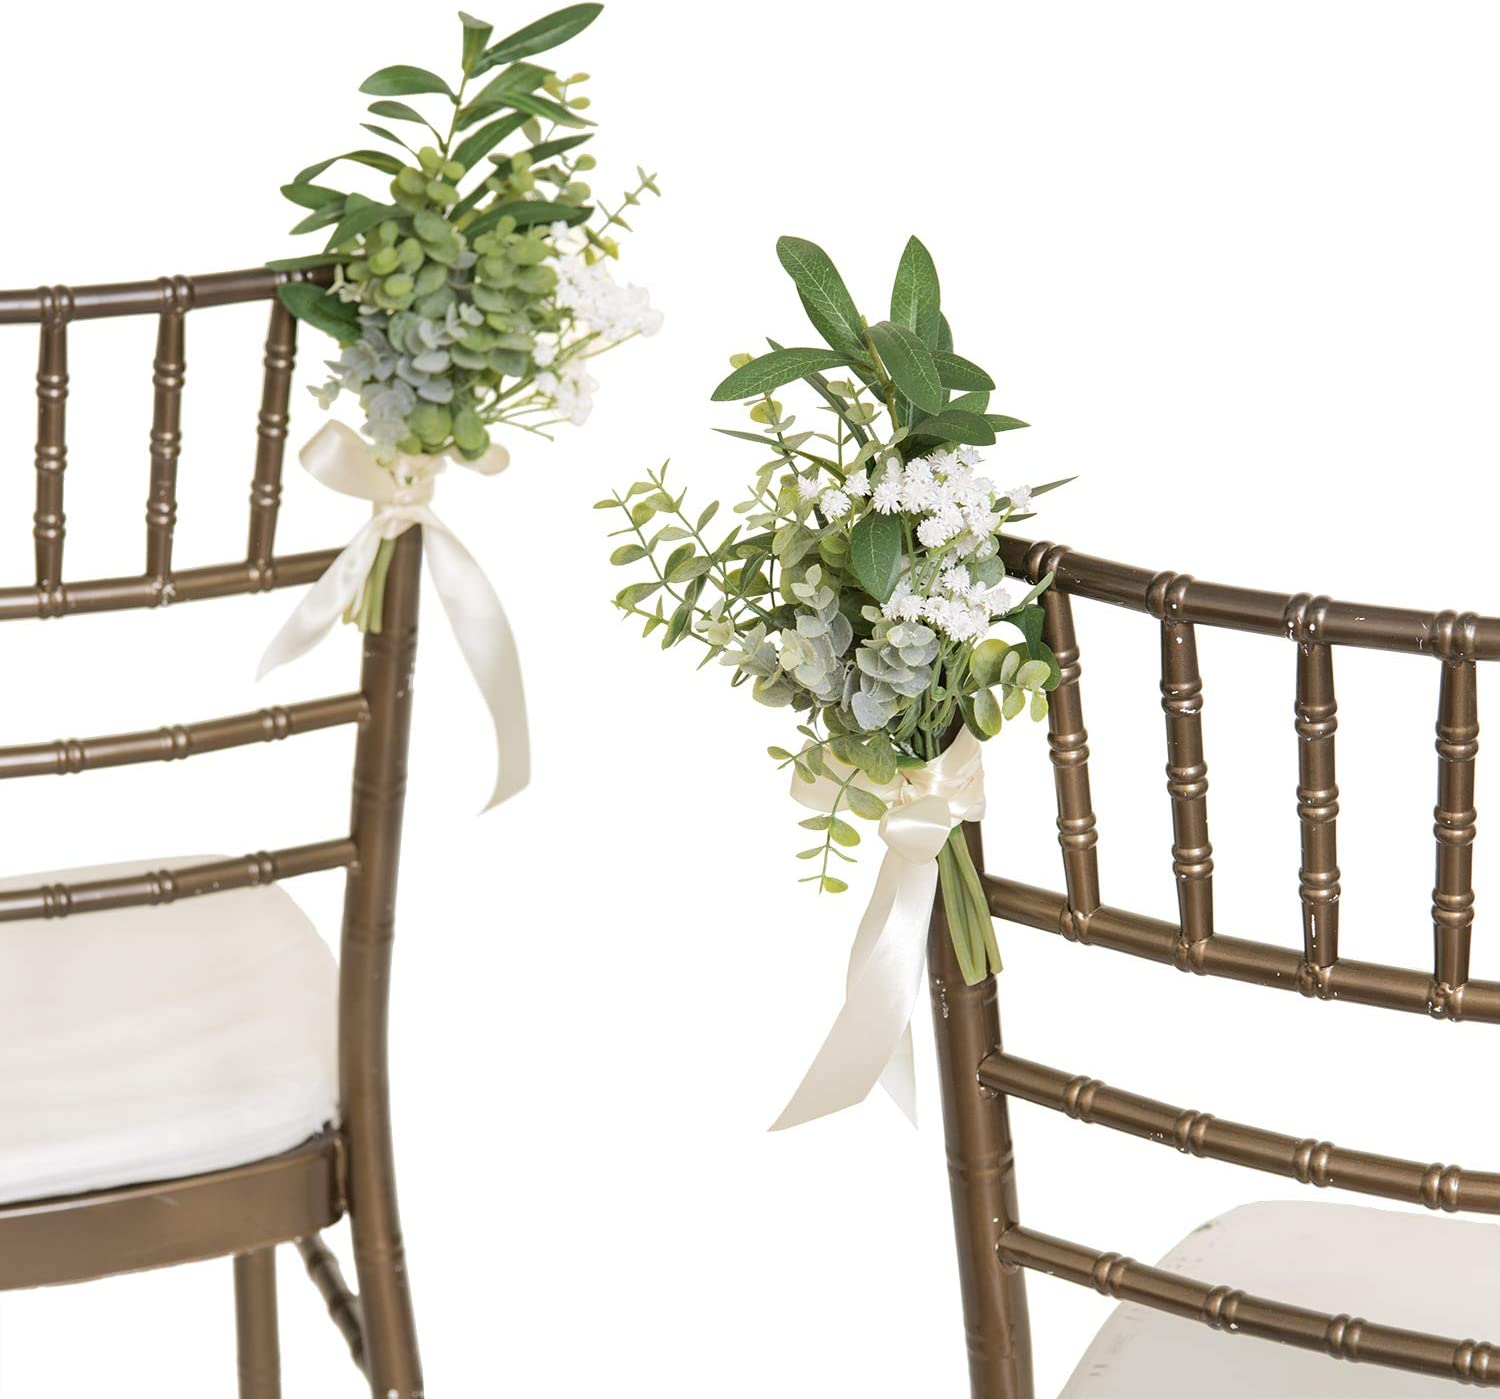 Ling's moment Cozy Winter Greenery Wedding Aisle Decorations for Wedding Chair Decorations with Babysbreath Eucalyptus,Set of 8